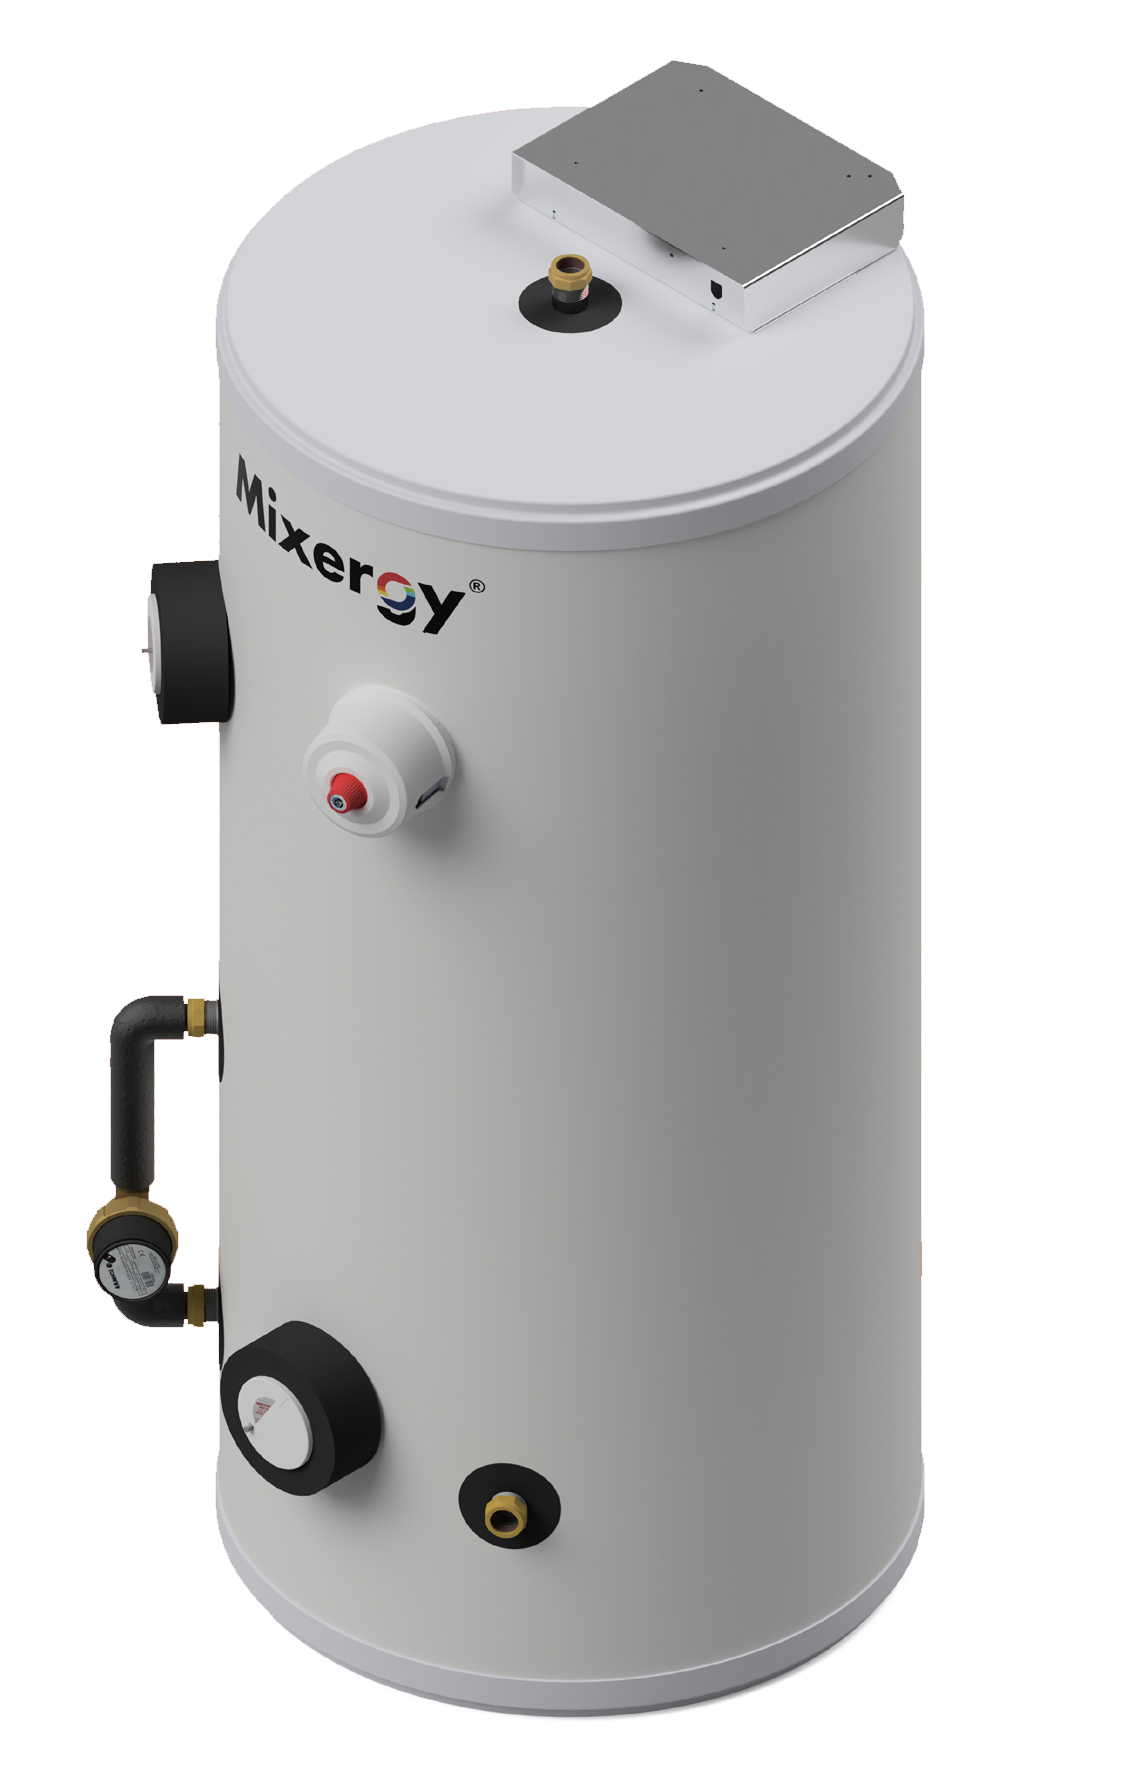 Mixergy hot water cylinder